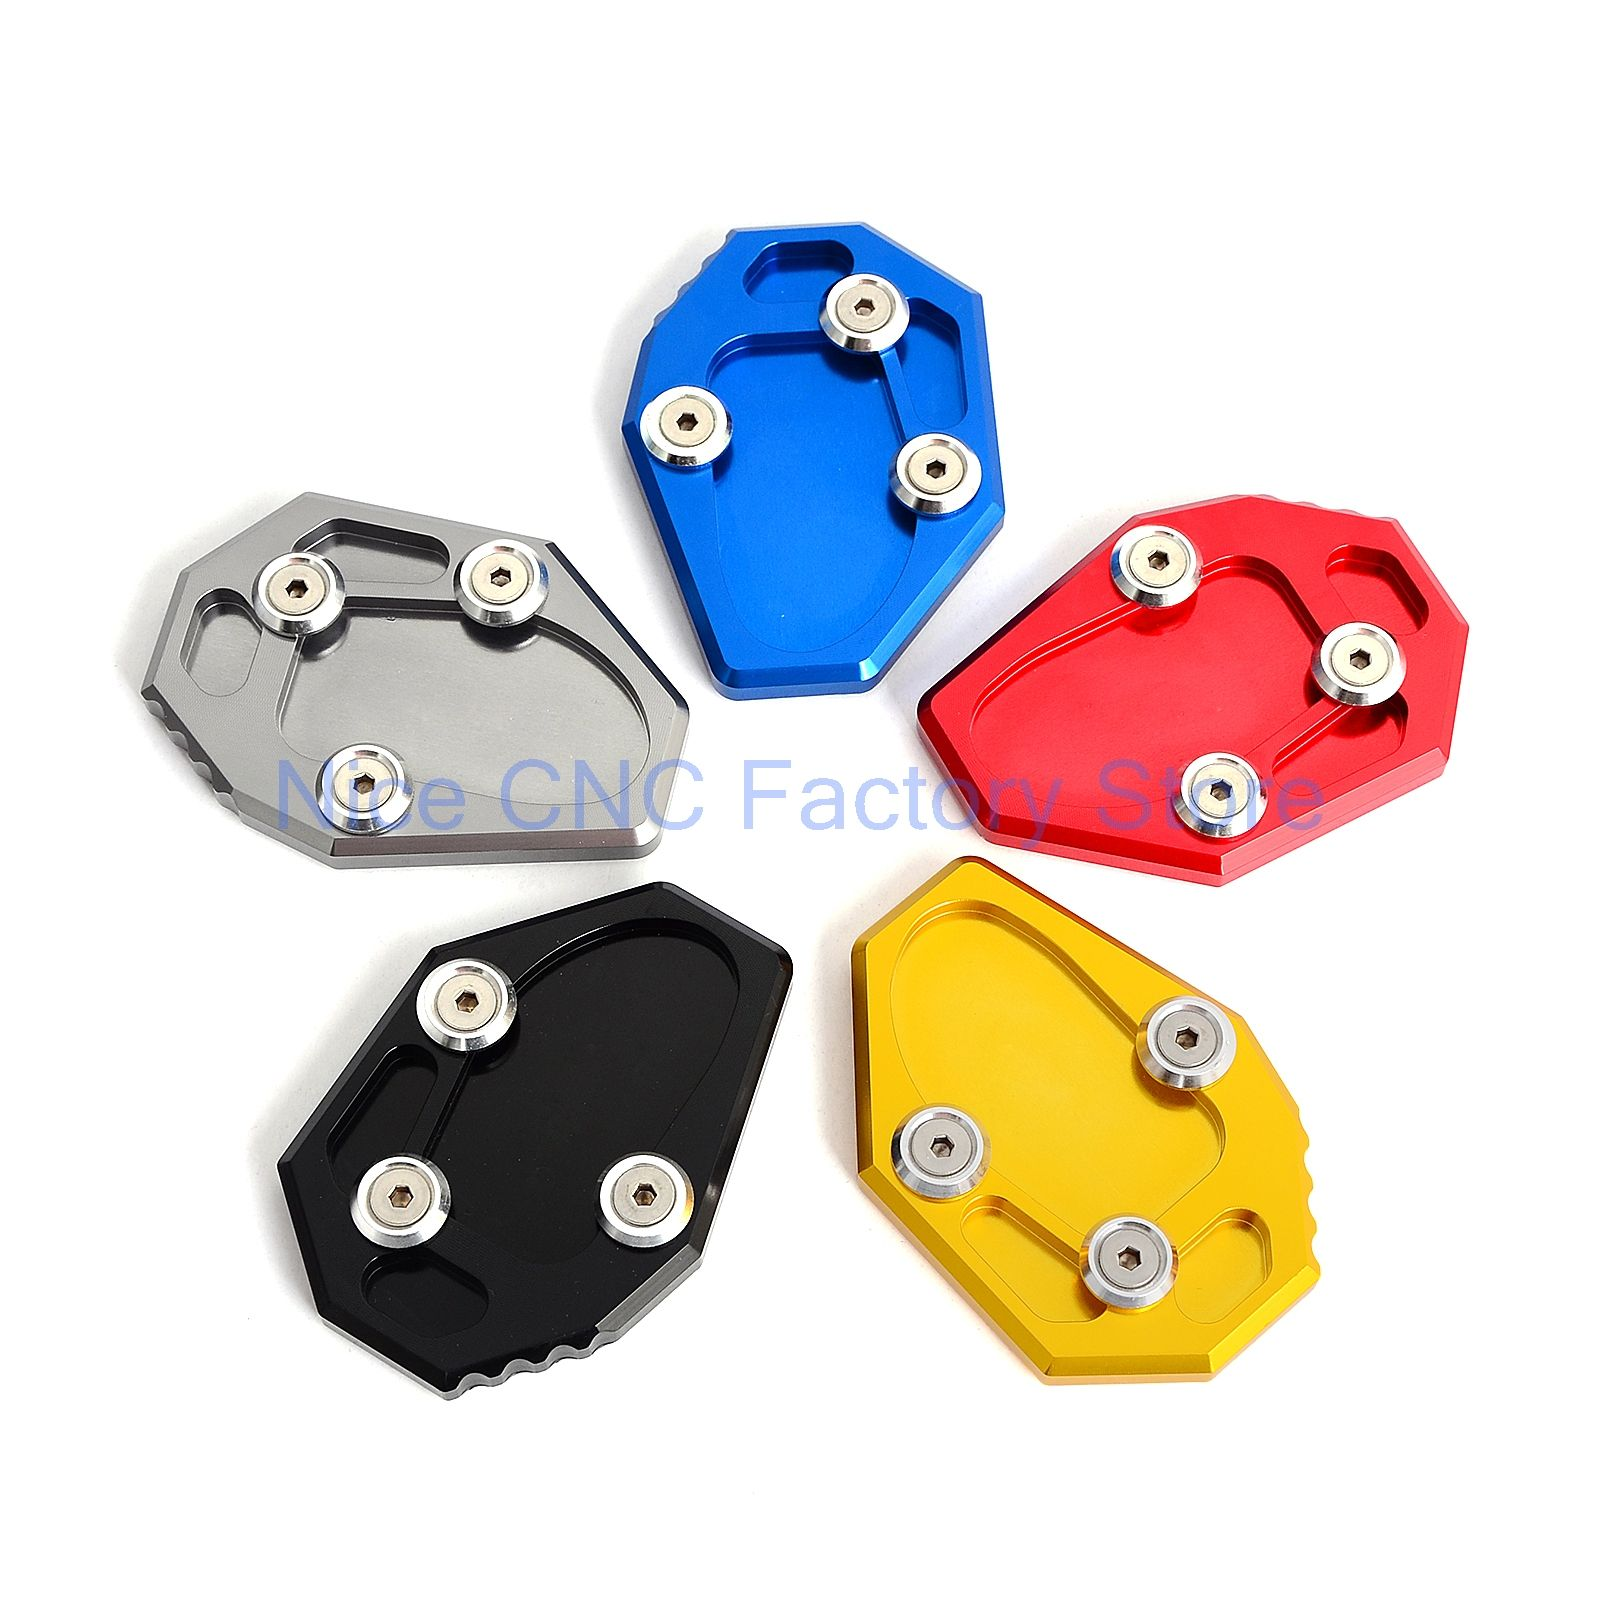 Motorcycle Kickstand Aluminum Enlarge Extension Side Stand Plate Enlarge For Yamaha MT-07 MT07 XJ6  sc 1 st  Pinterest & Motorcycle Kickstand Aluminum Enlarge Extension Side Stand Plate ...